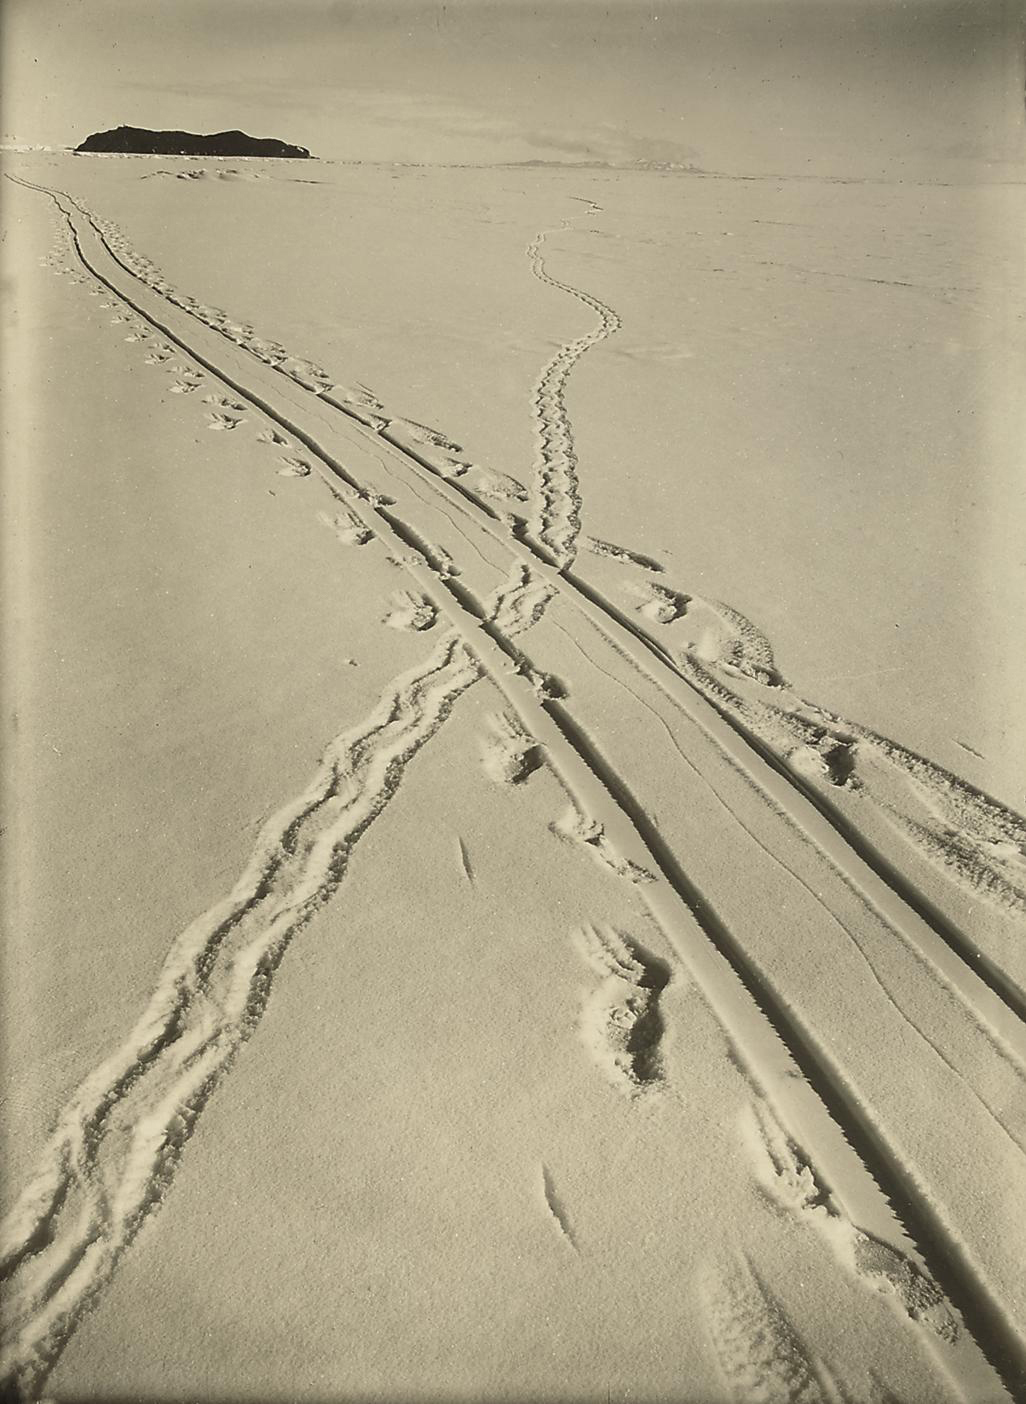 British Antarctic Expedition, 1910-13: 32 contact prints, all studies of ice formations at Cape Evans and environs